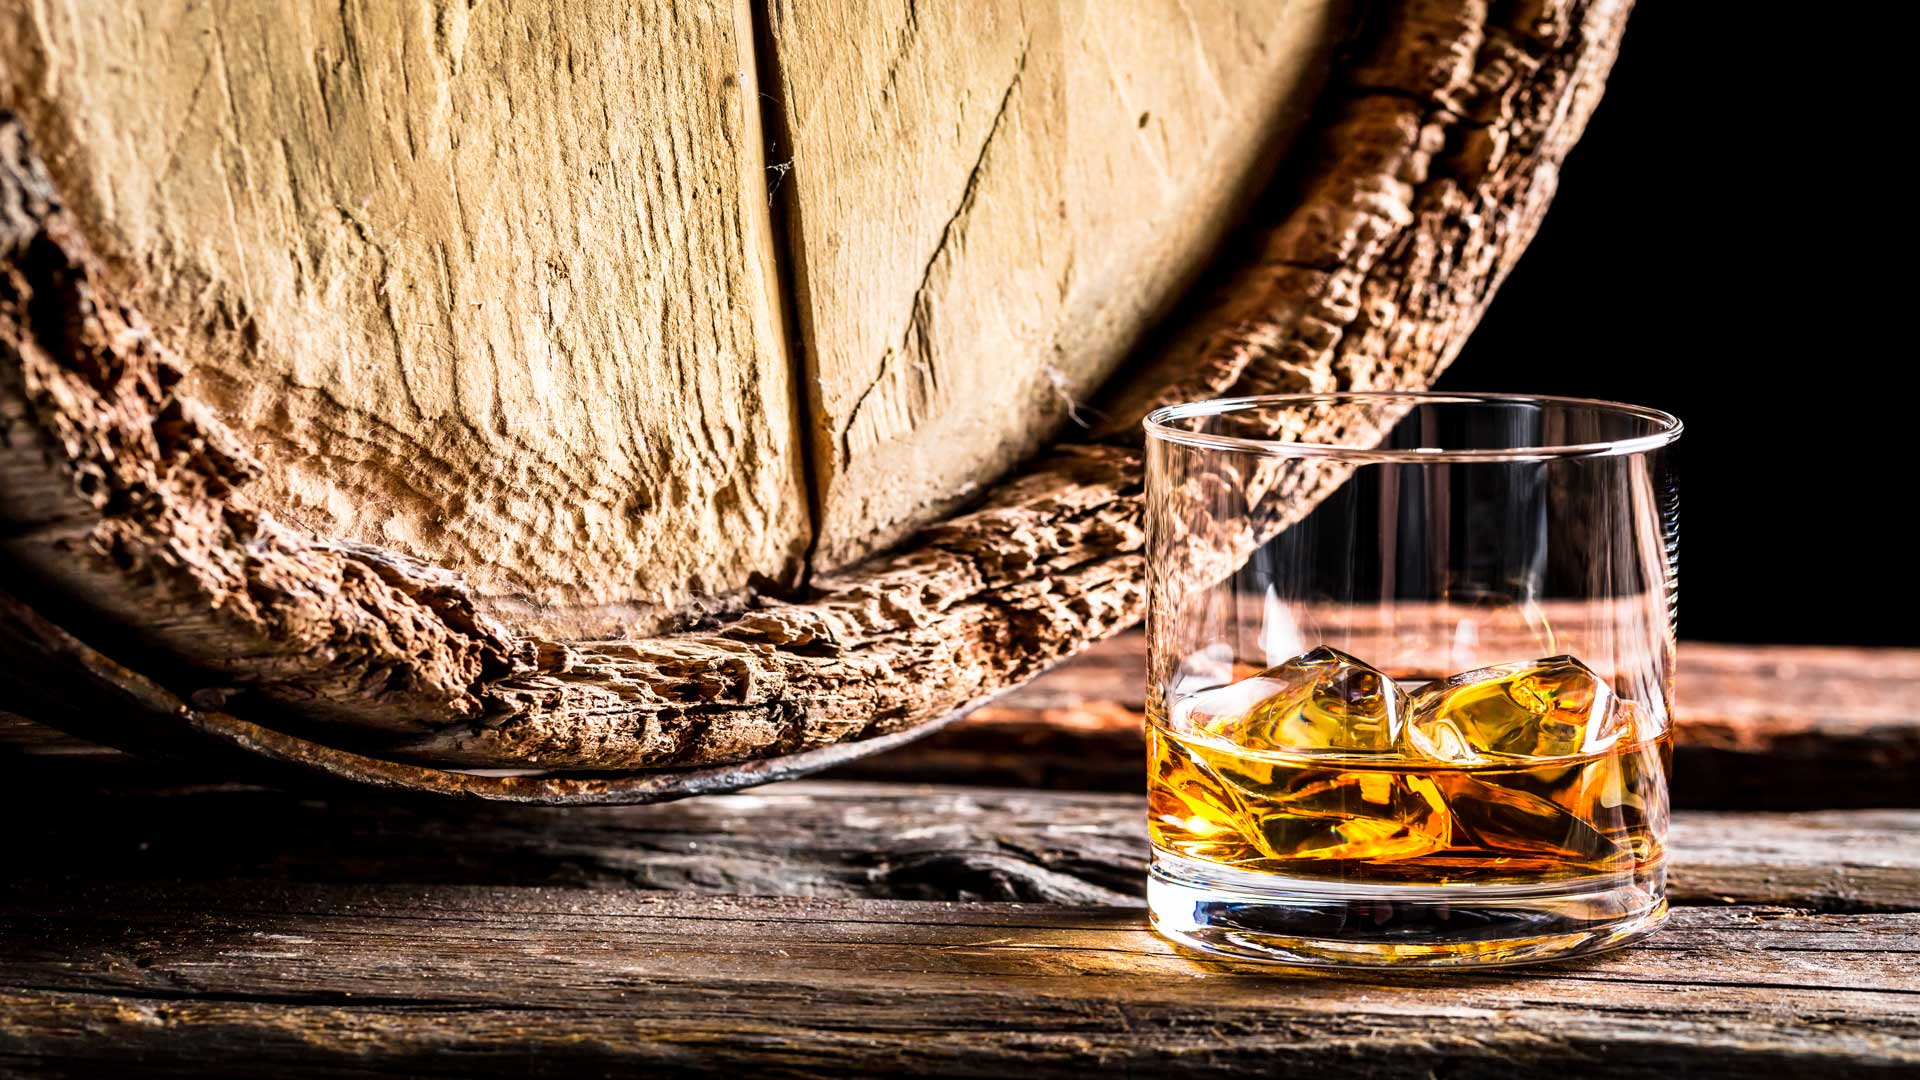 barrel and glass of whisky